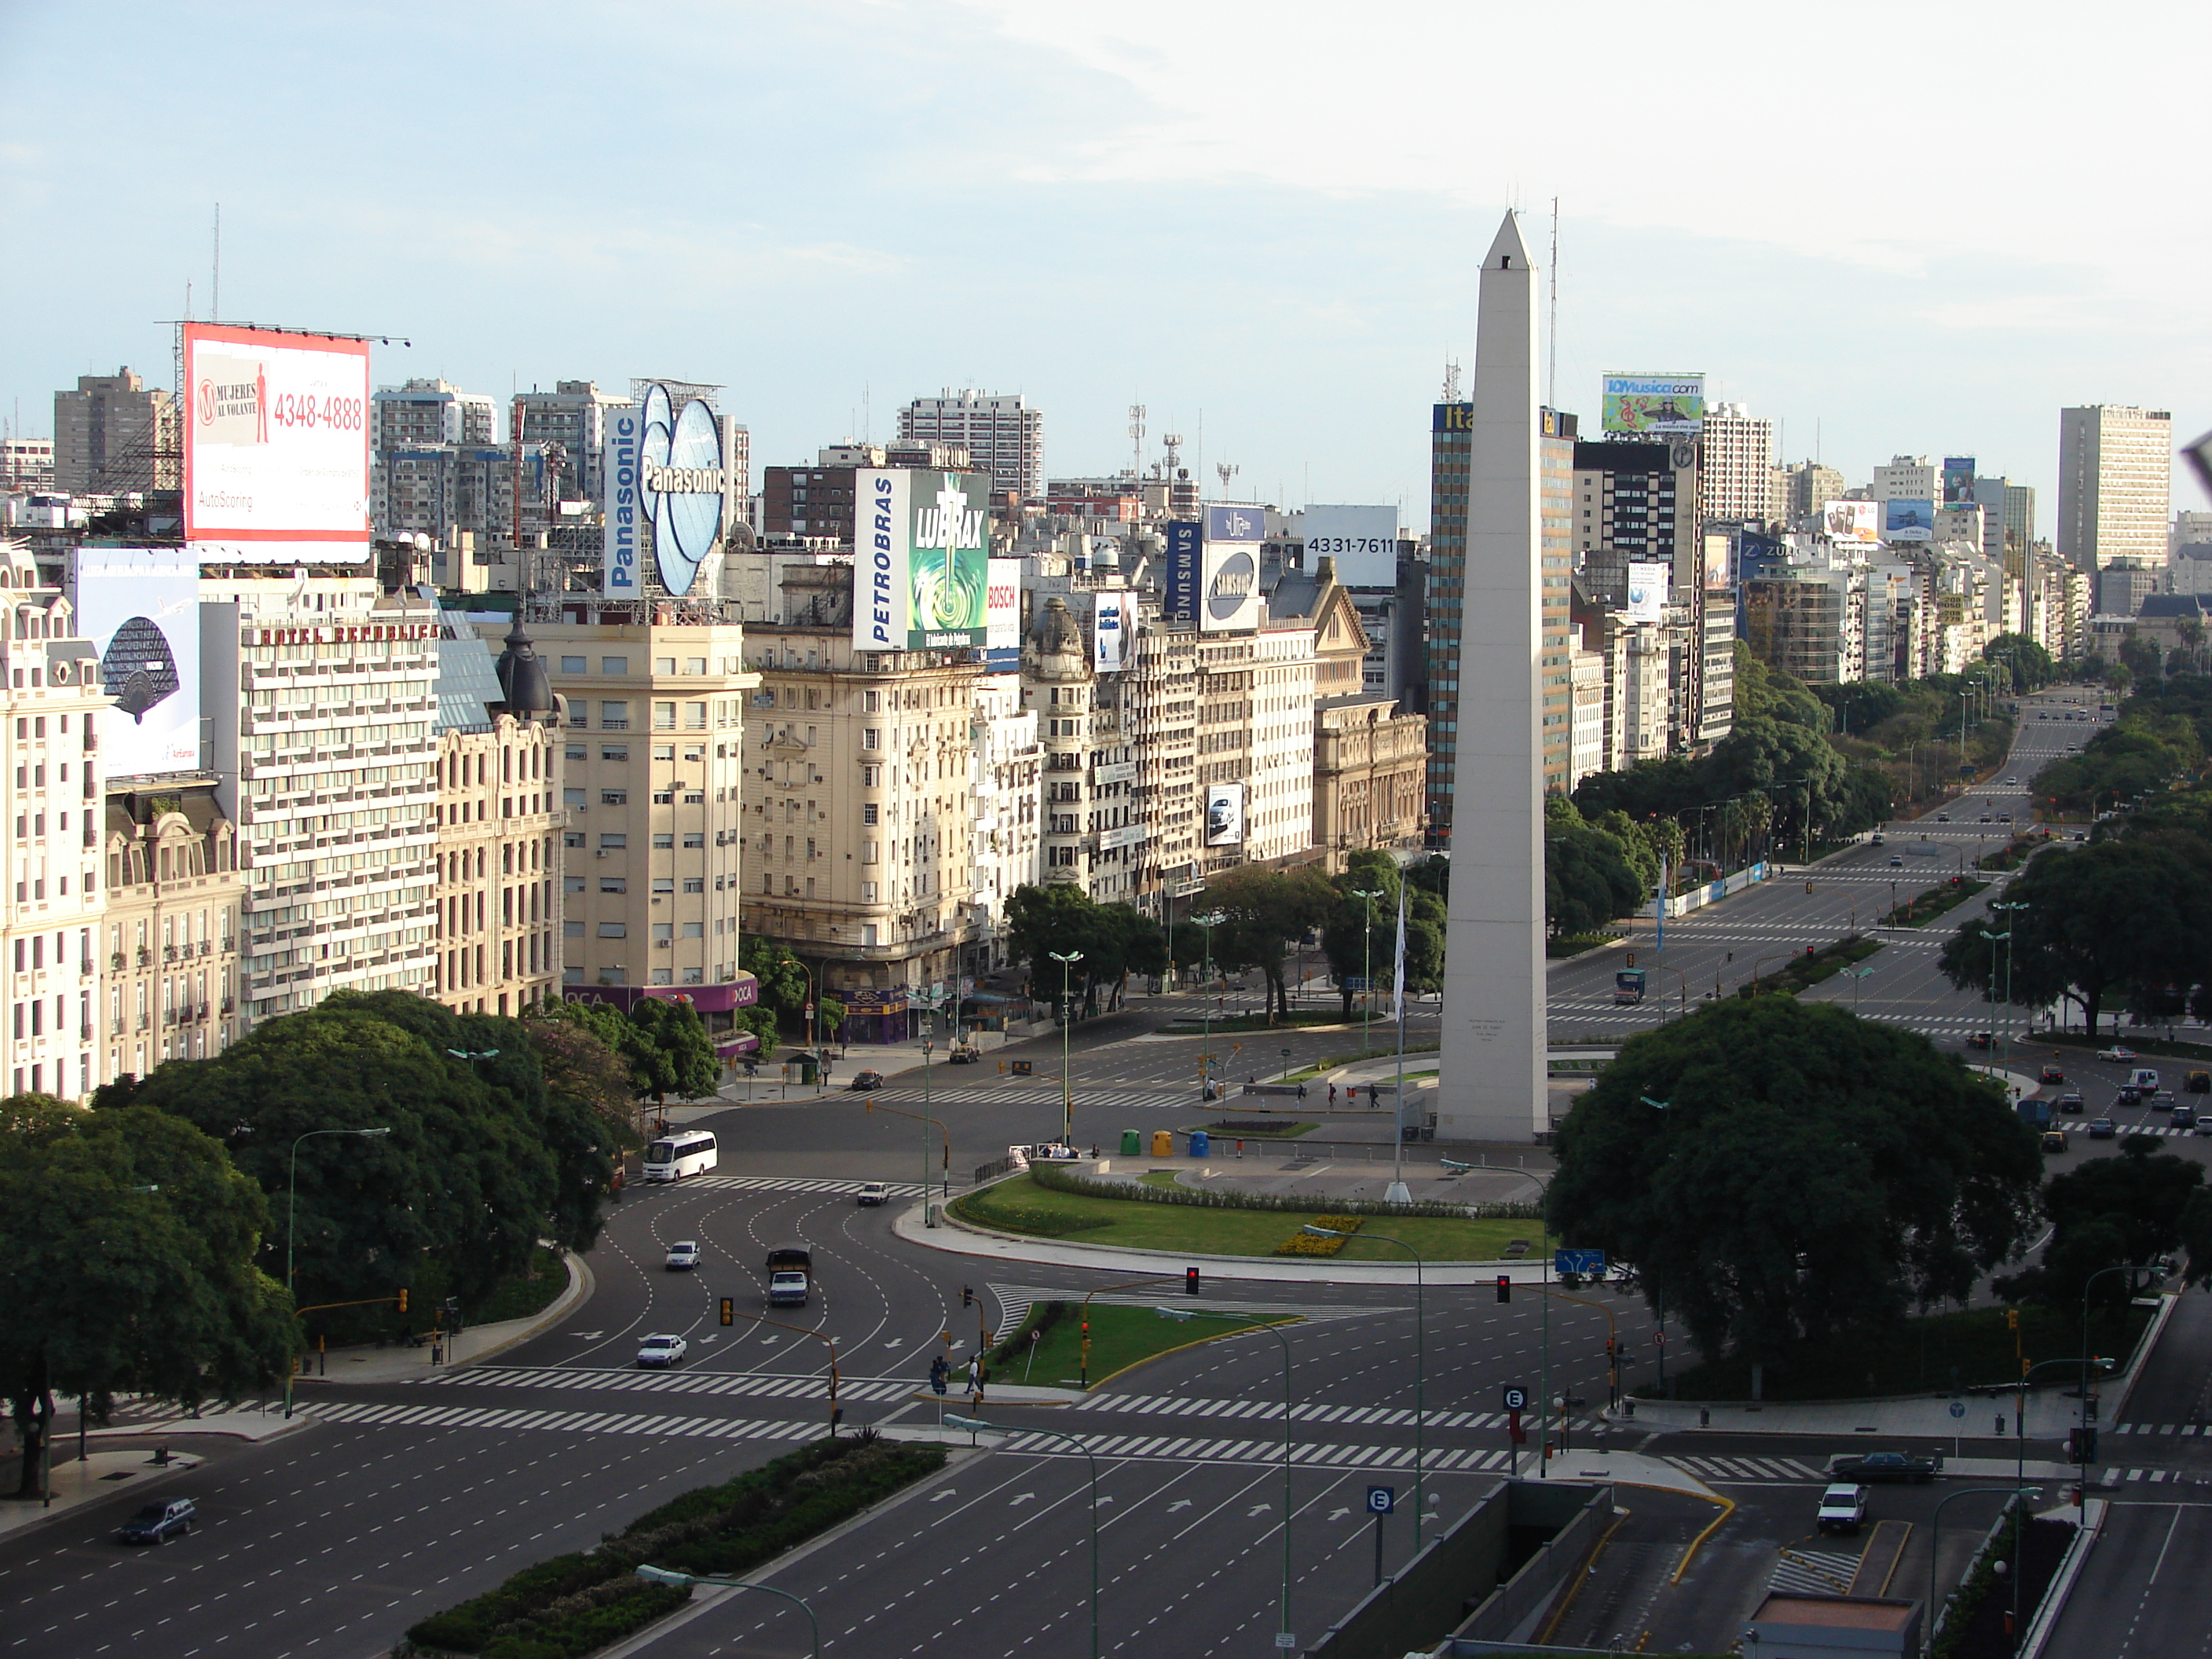 Int'l AIDS Awareness Day Buenos Aires - Obelisco and Avenida 9 de Julio